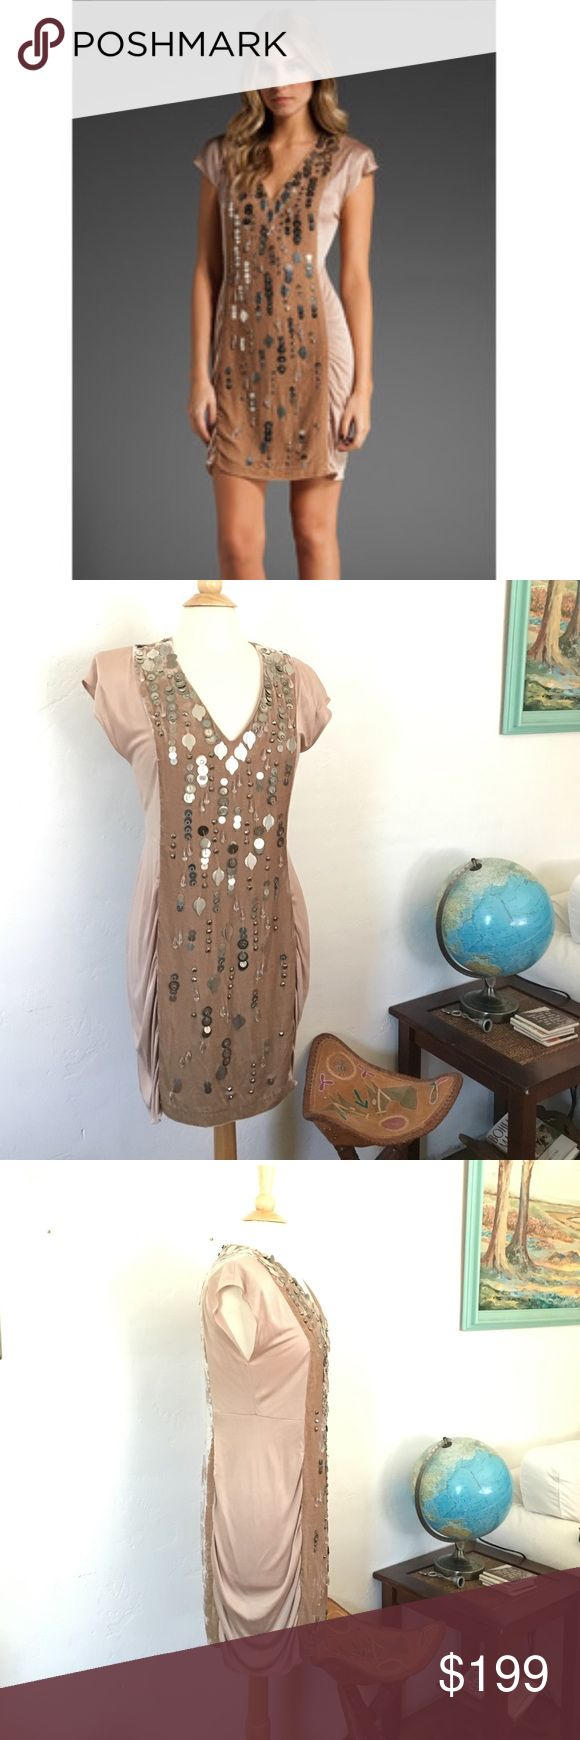 New Year's Dress Nanette Lepore Mosaic Dress Great designer party dress! Really great for a New Years party! Has been worn a few times but still in good condition. Needs to be dry cleaned since there are some sweat stains but they come right out right after dry cleaning.  Offers welcome! Nanette Lepore Dresses